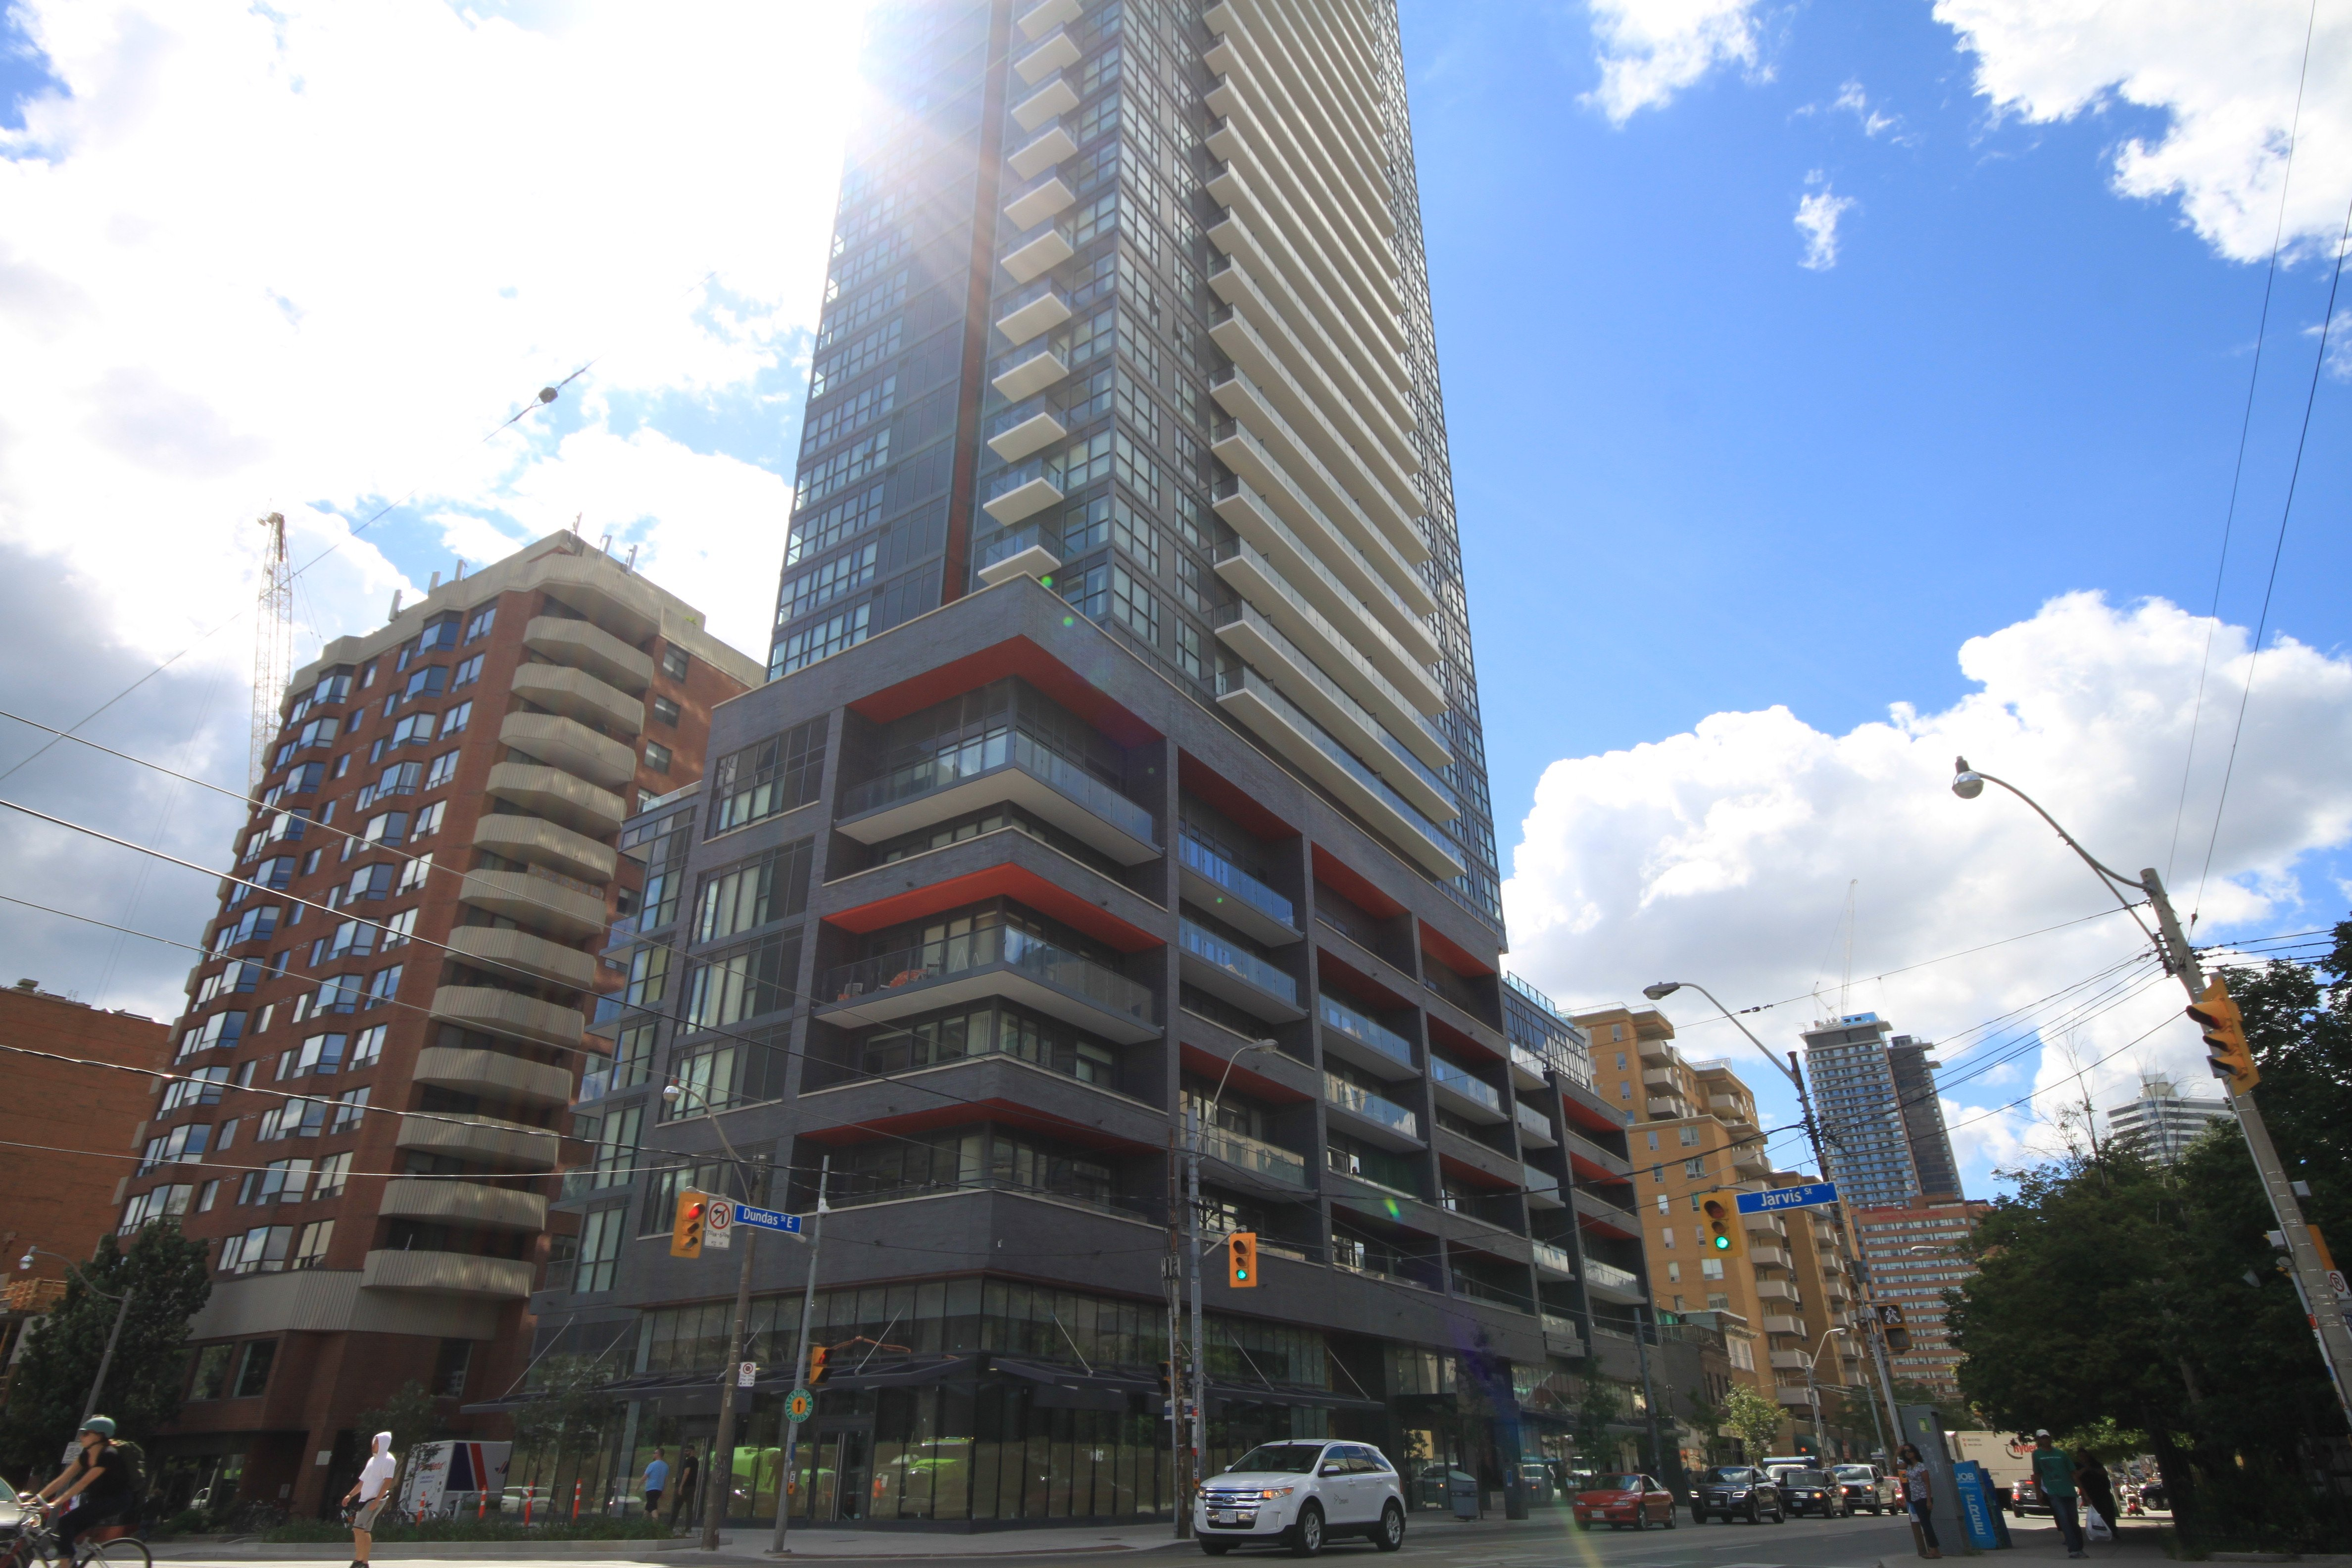 An Affordable Home Ownership Bachelor Suite Available At Artscape Lofts At PACE